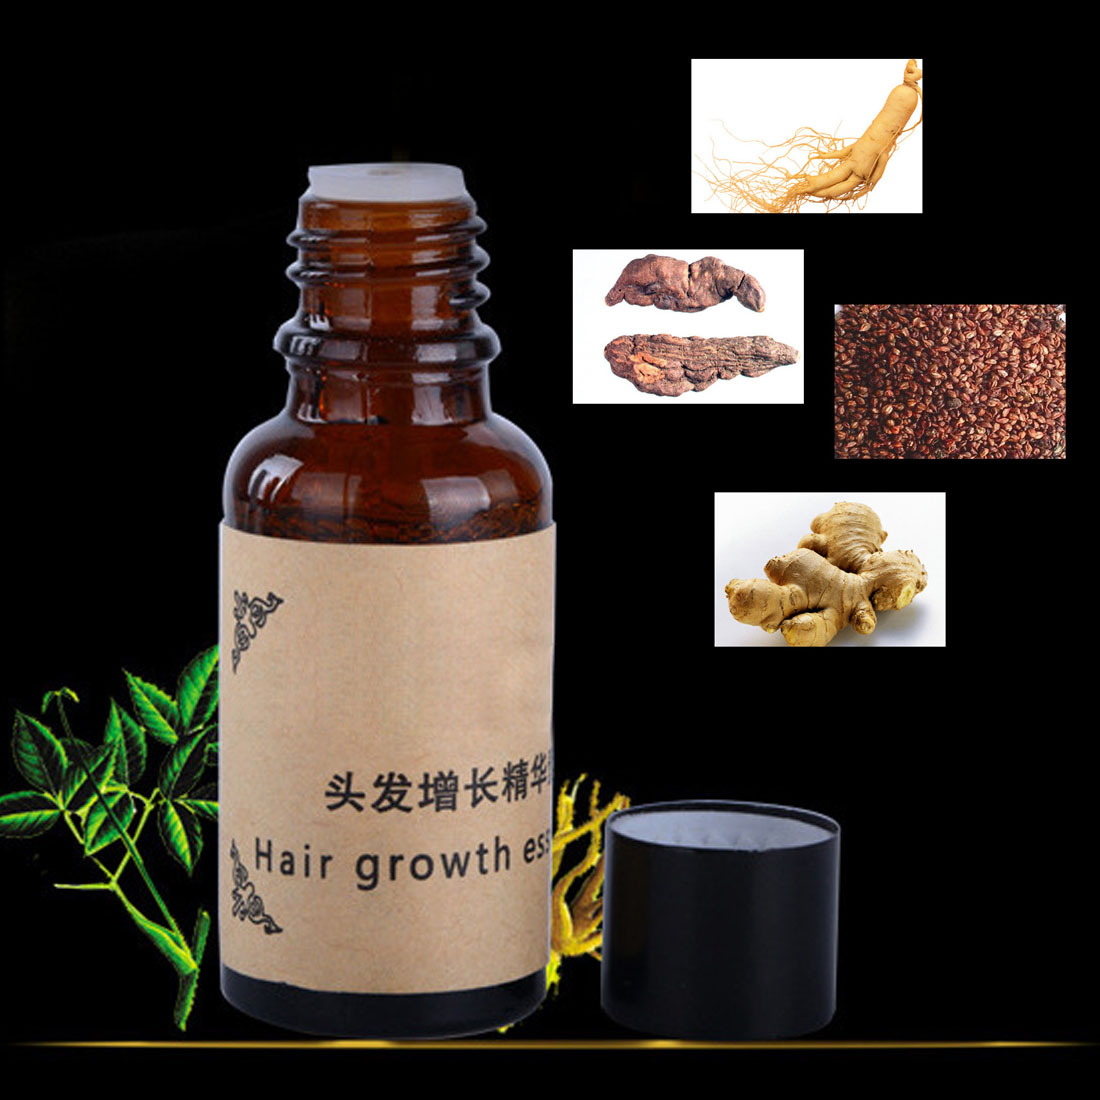 Herbal Keratin Fast Hair Growth Essence alopecia hair loss liquid Ginger sunburst Hair Growth Pilatory Oil